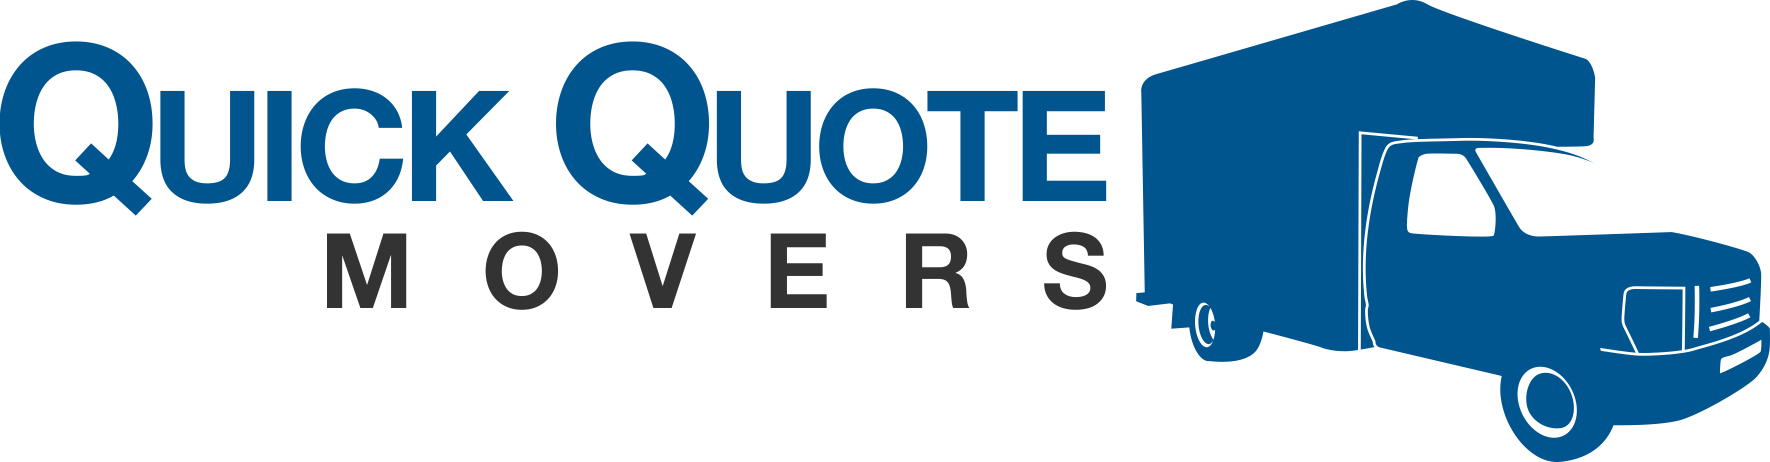 Quick Quote Quick Quote Movers  Greenville Sc Movers